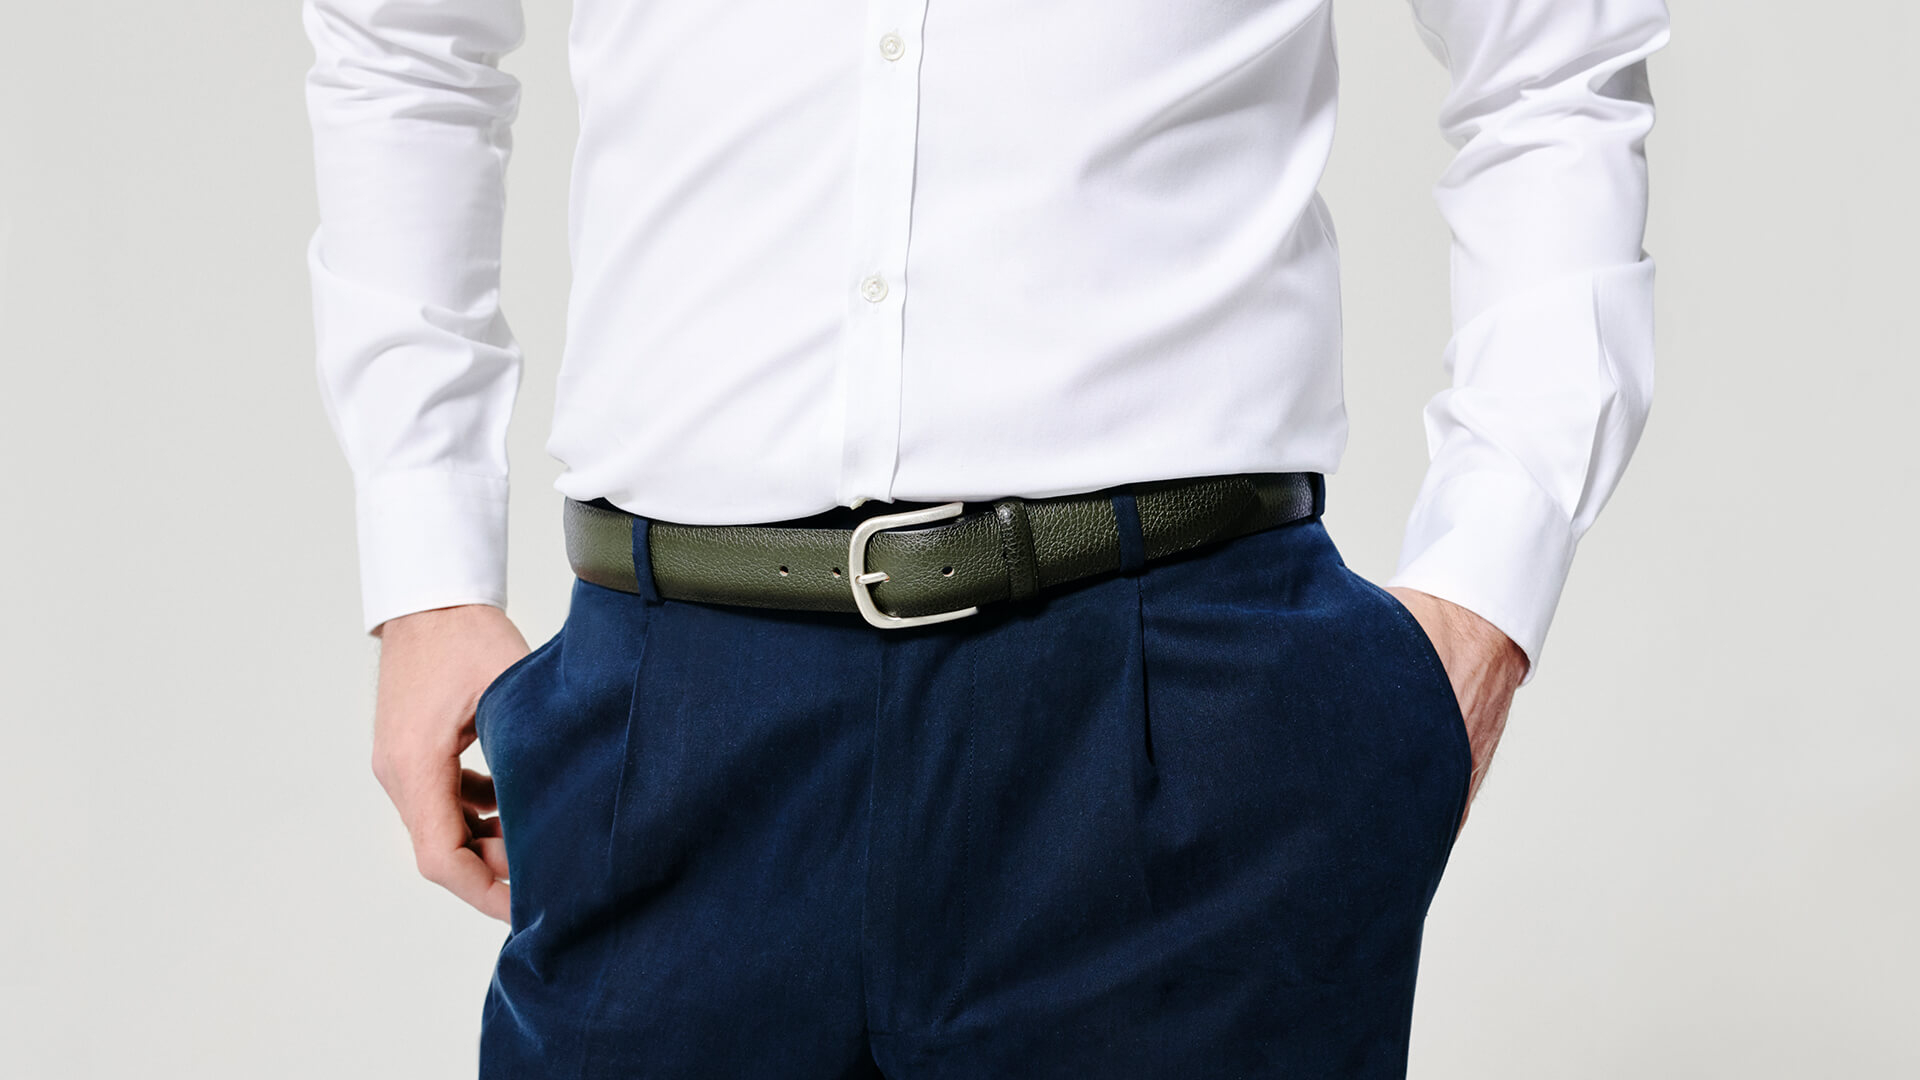 ORCIANI | Man's Belts collection. Leather Belts | Shop online USA